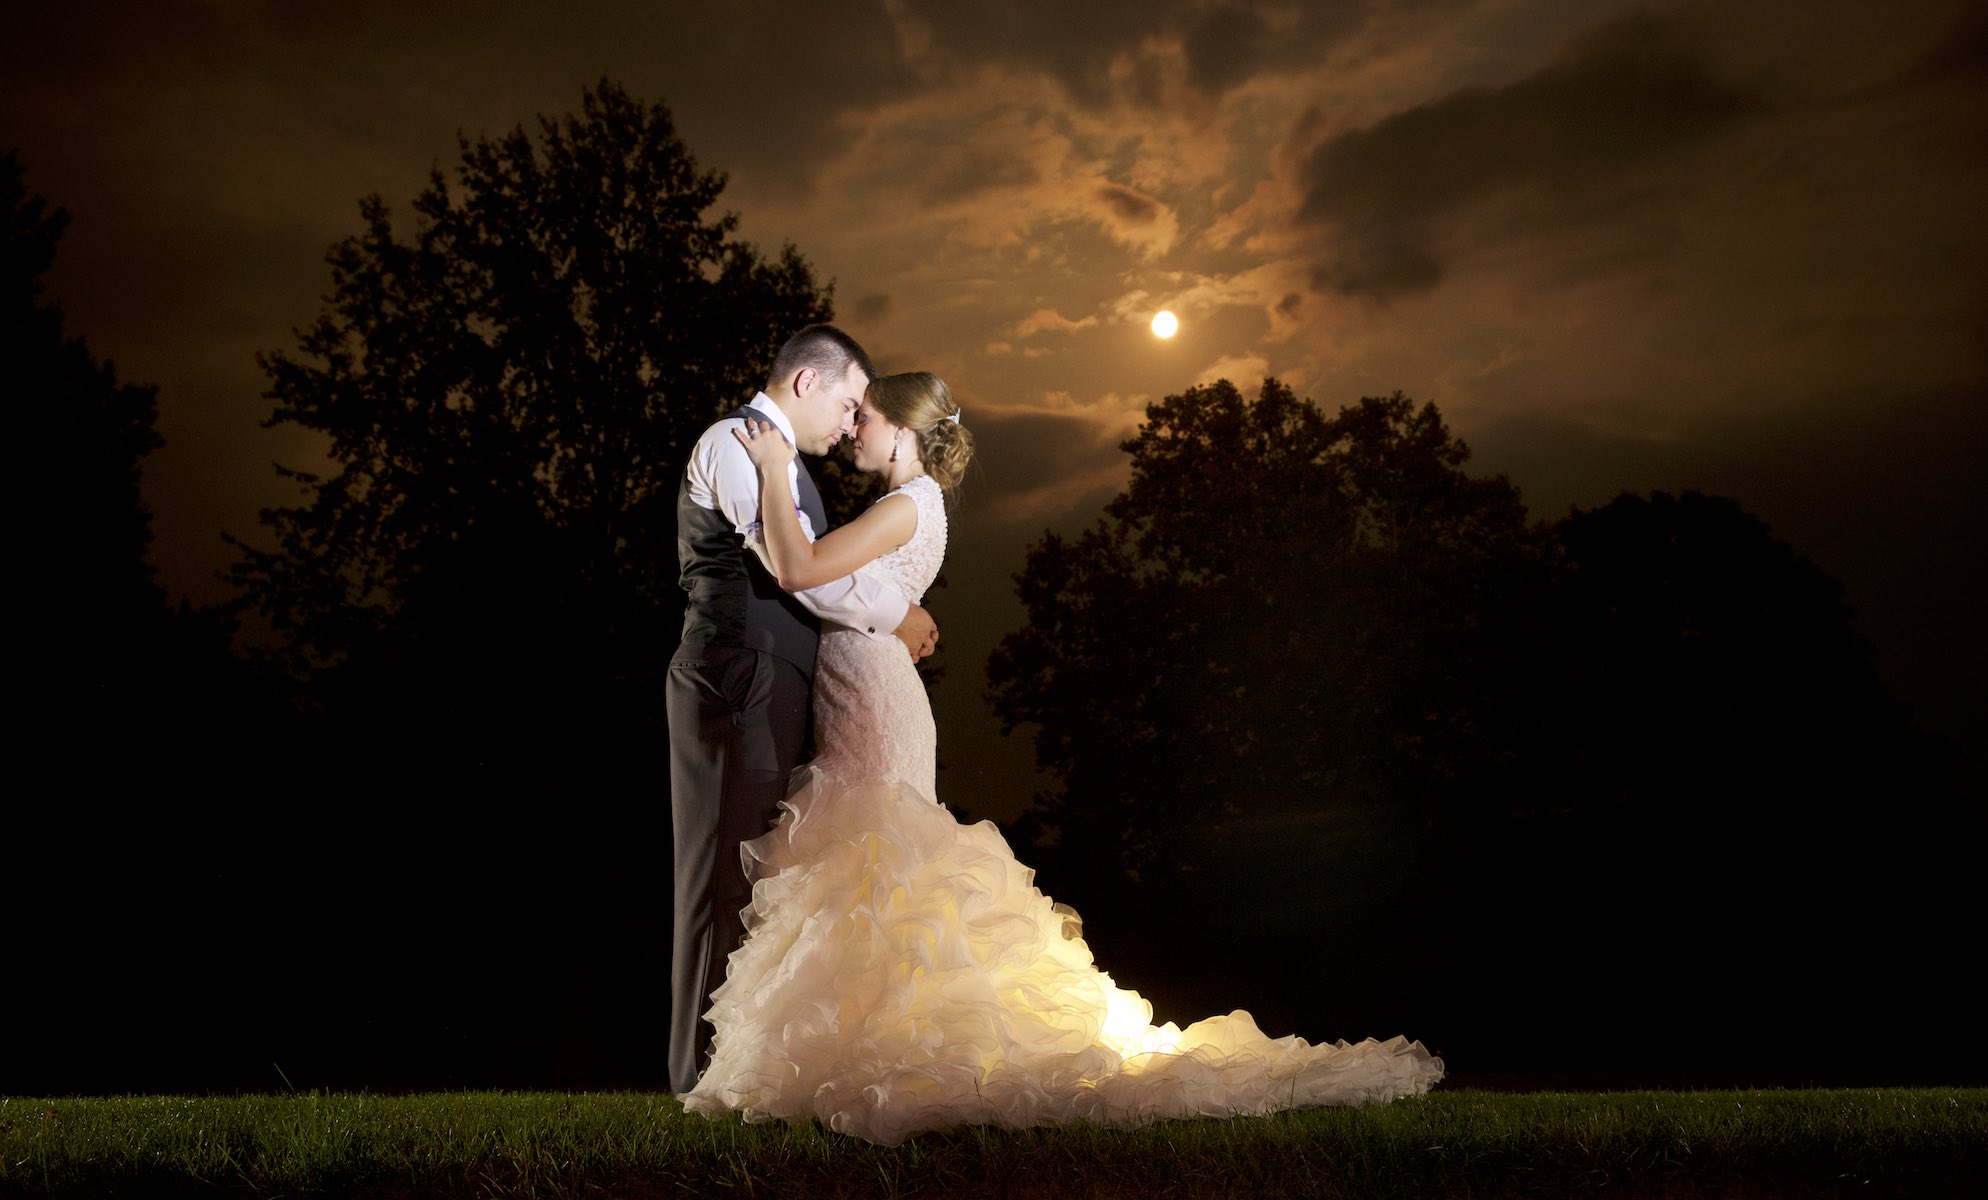 Portrait by moonlight, Amanda & Nick's wedding at the Jacksonville Illinois Country Club. Wedding photography by Steve & Tiffany Warmowski.